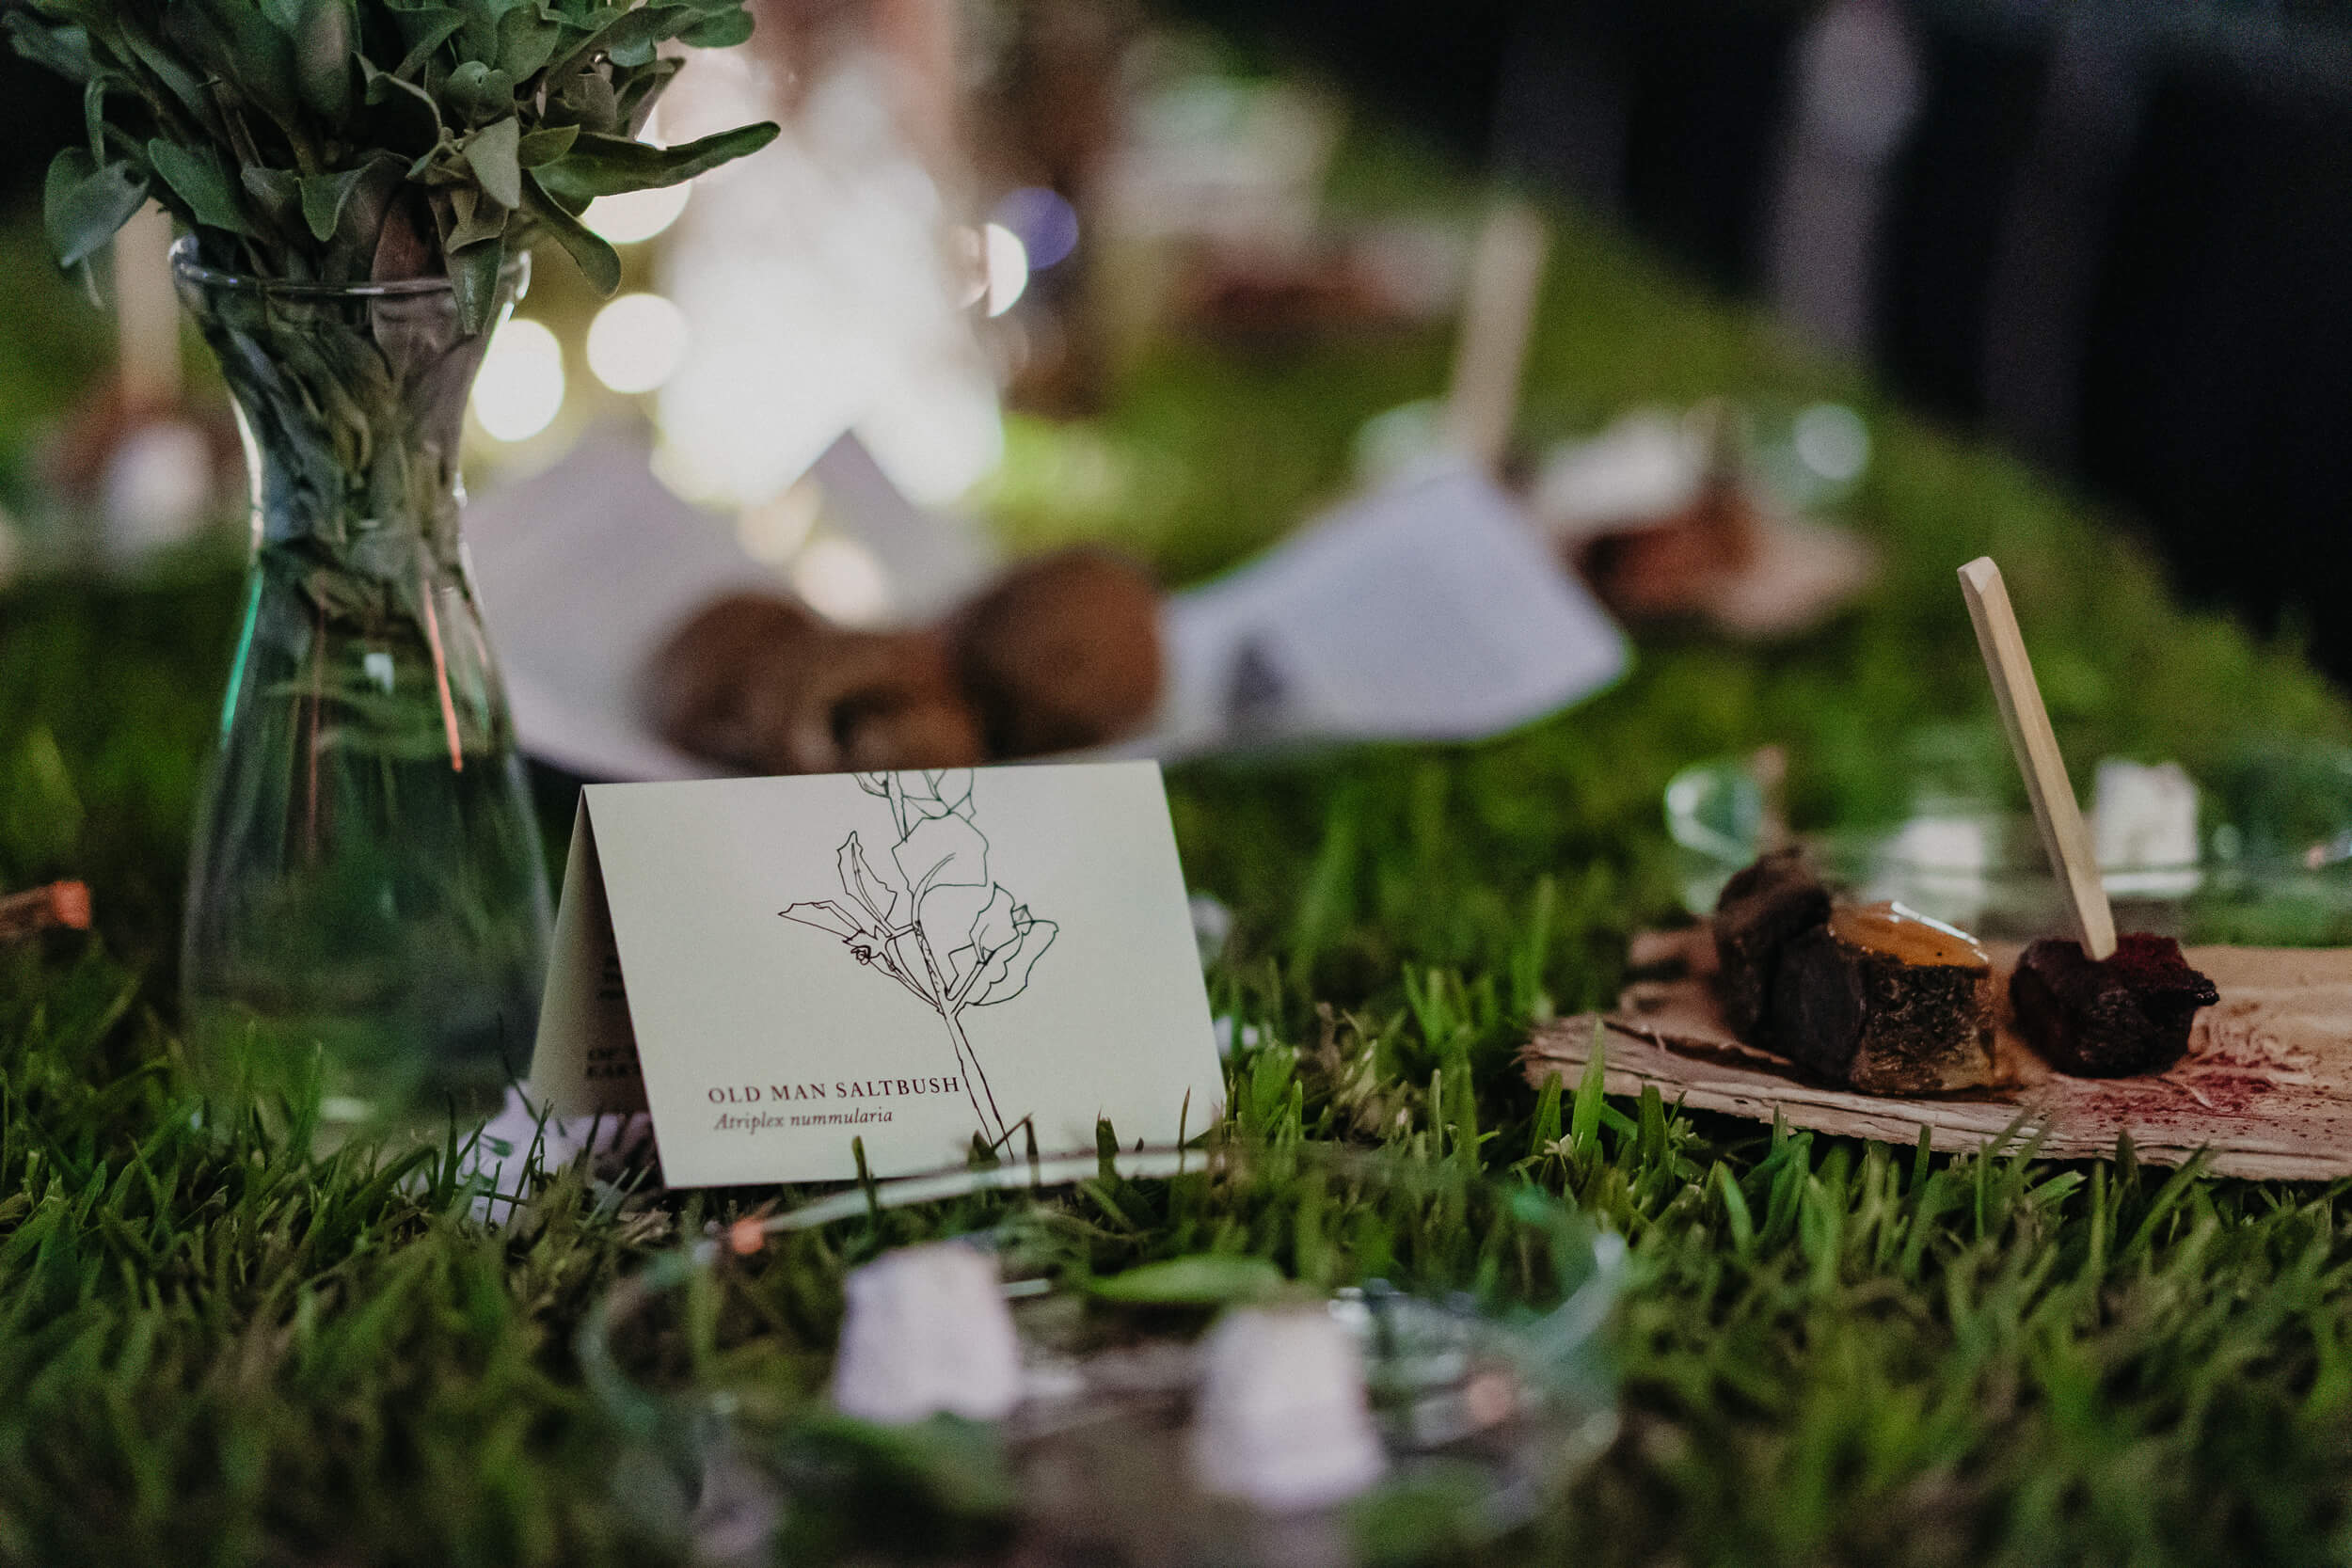 Of-This-Earth-2019-Bunjil-Place-dinning-event-saltbush-card-on-table.jpg